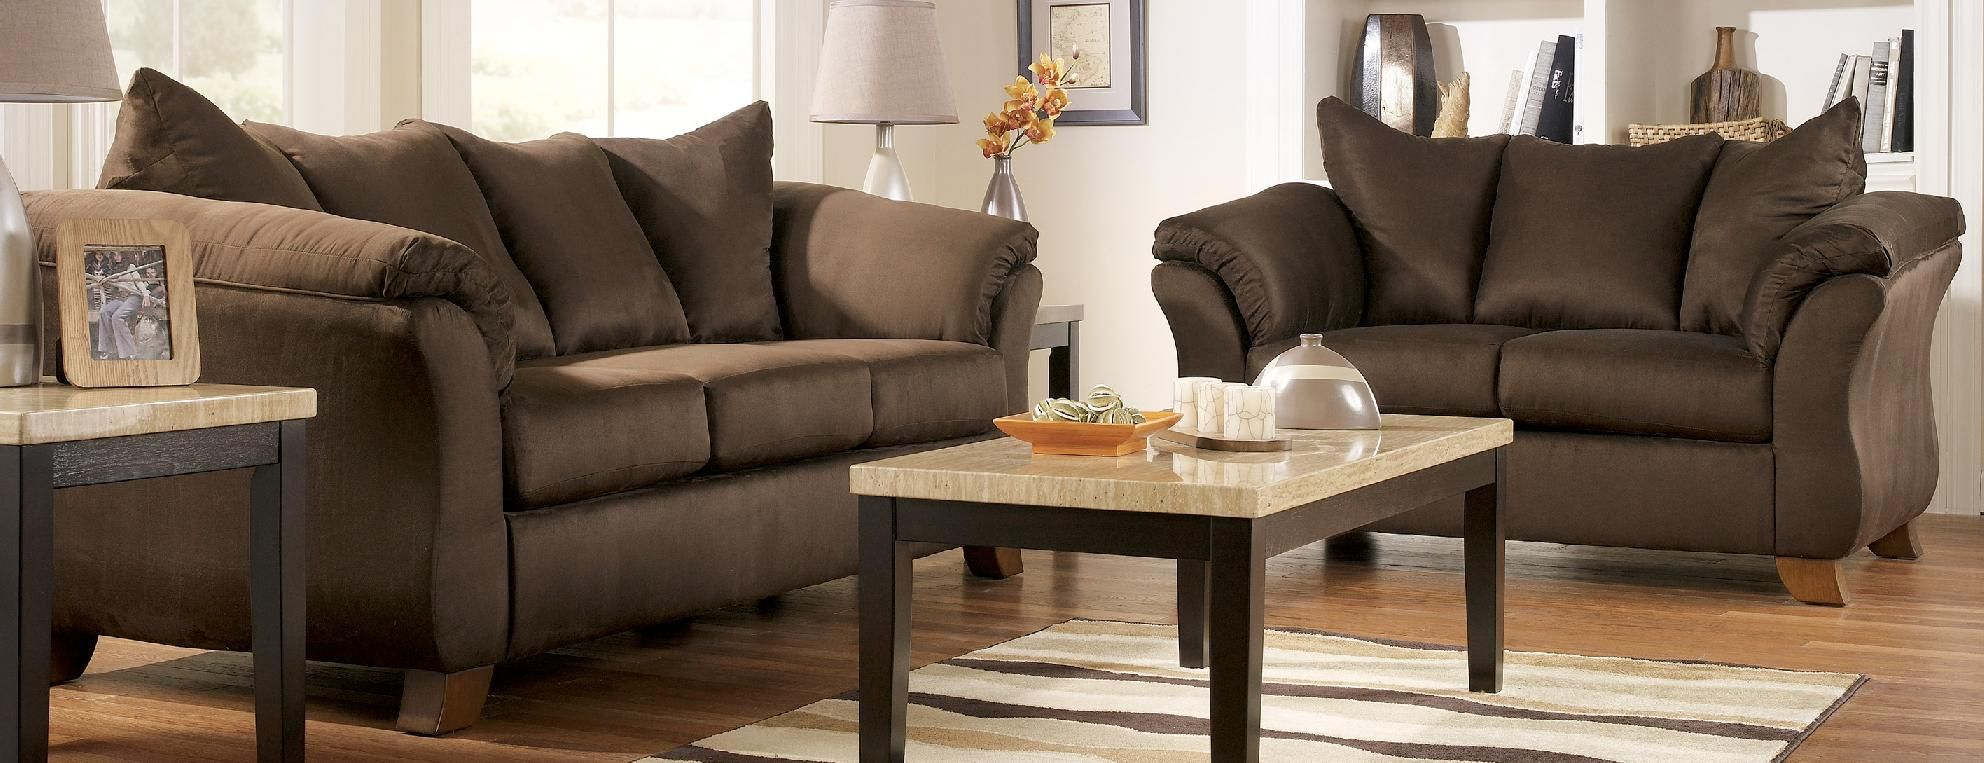 Couch Sets Under 500 Best Collections Of Sofas And Couches Sofacouchs Com Cheap Living Room Sets Discount Living Room Furniture Cheap Living Room Furniture